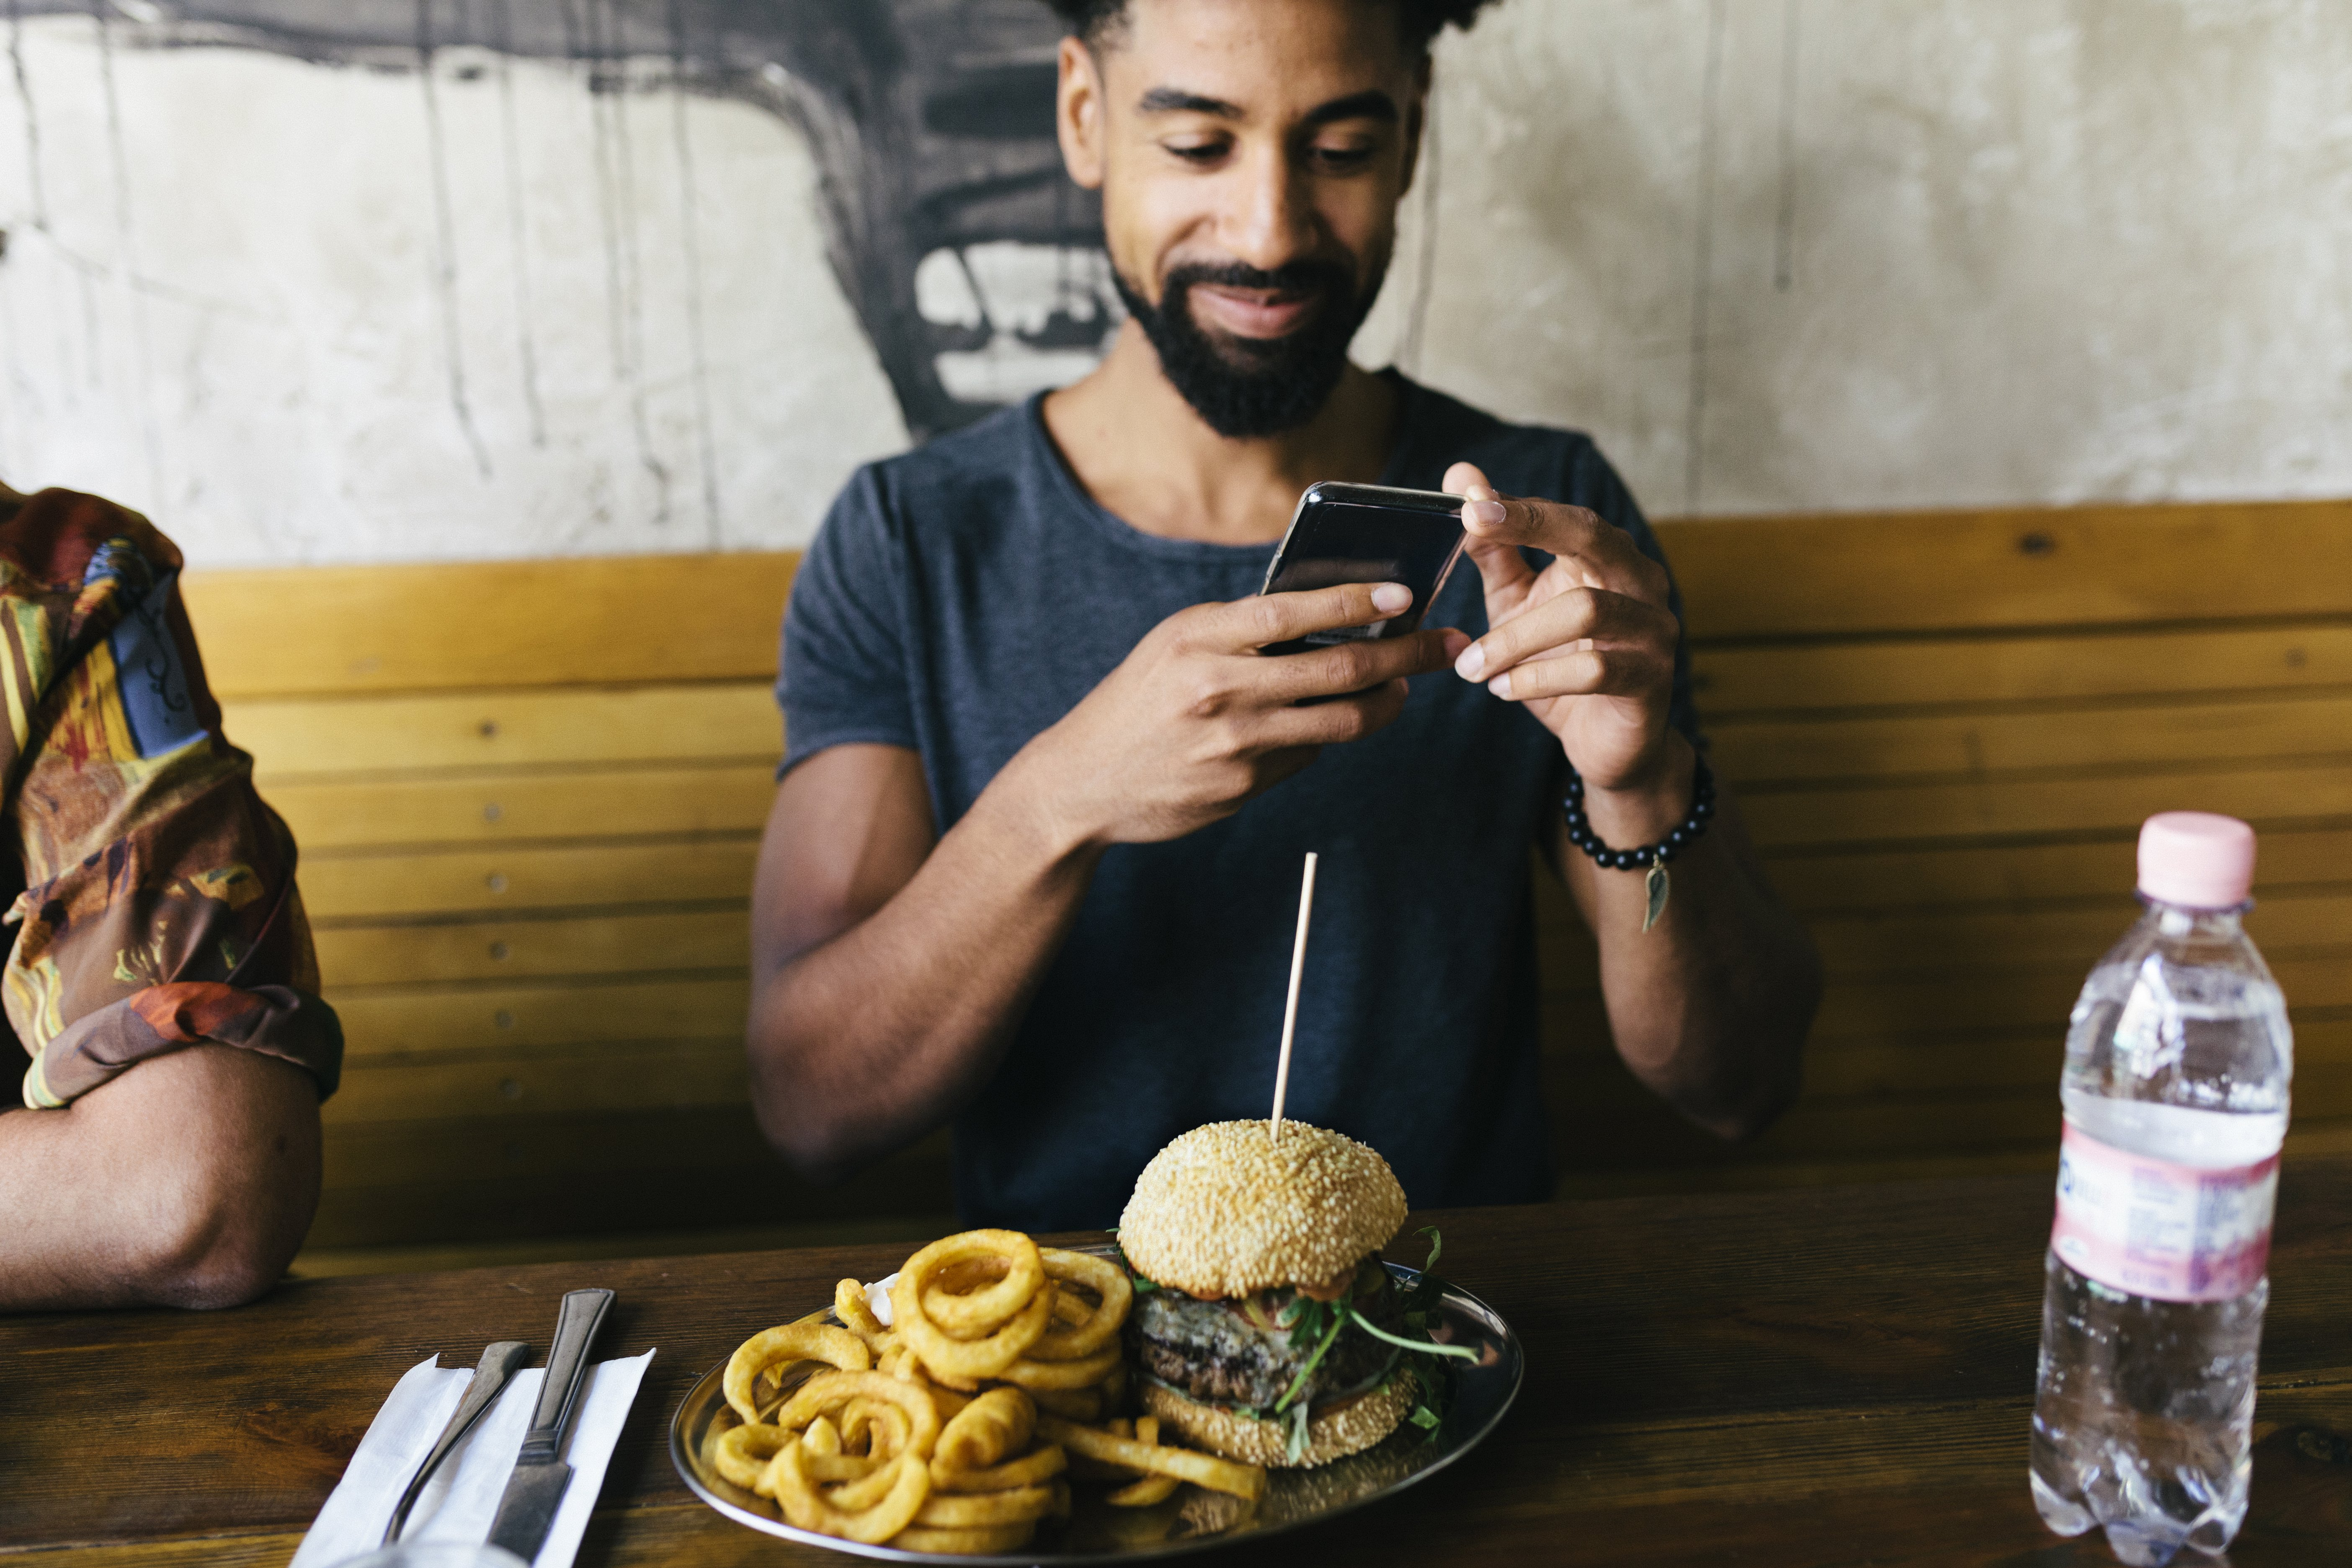 A man using his smartphone, taking photos of his burger before eating it at a trendy restaurant. | Photo: Getty Images